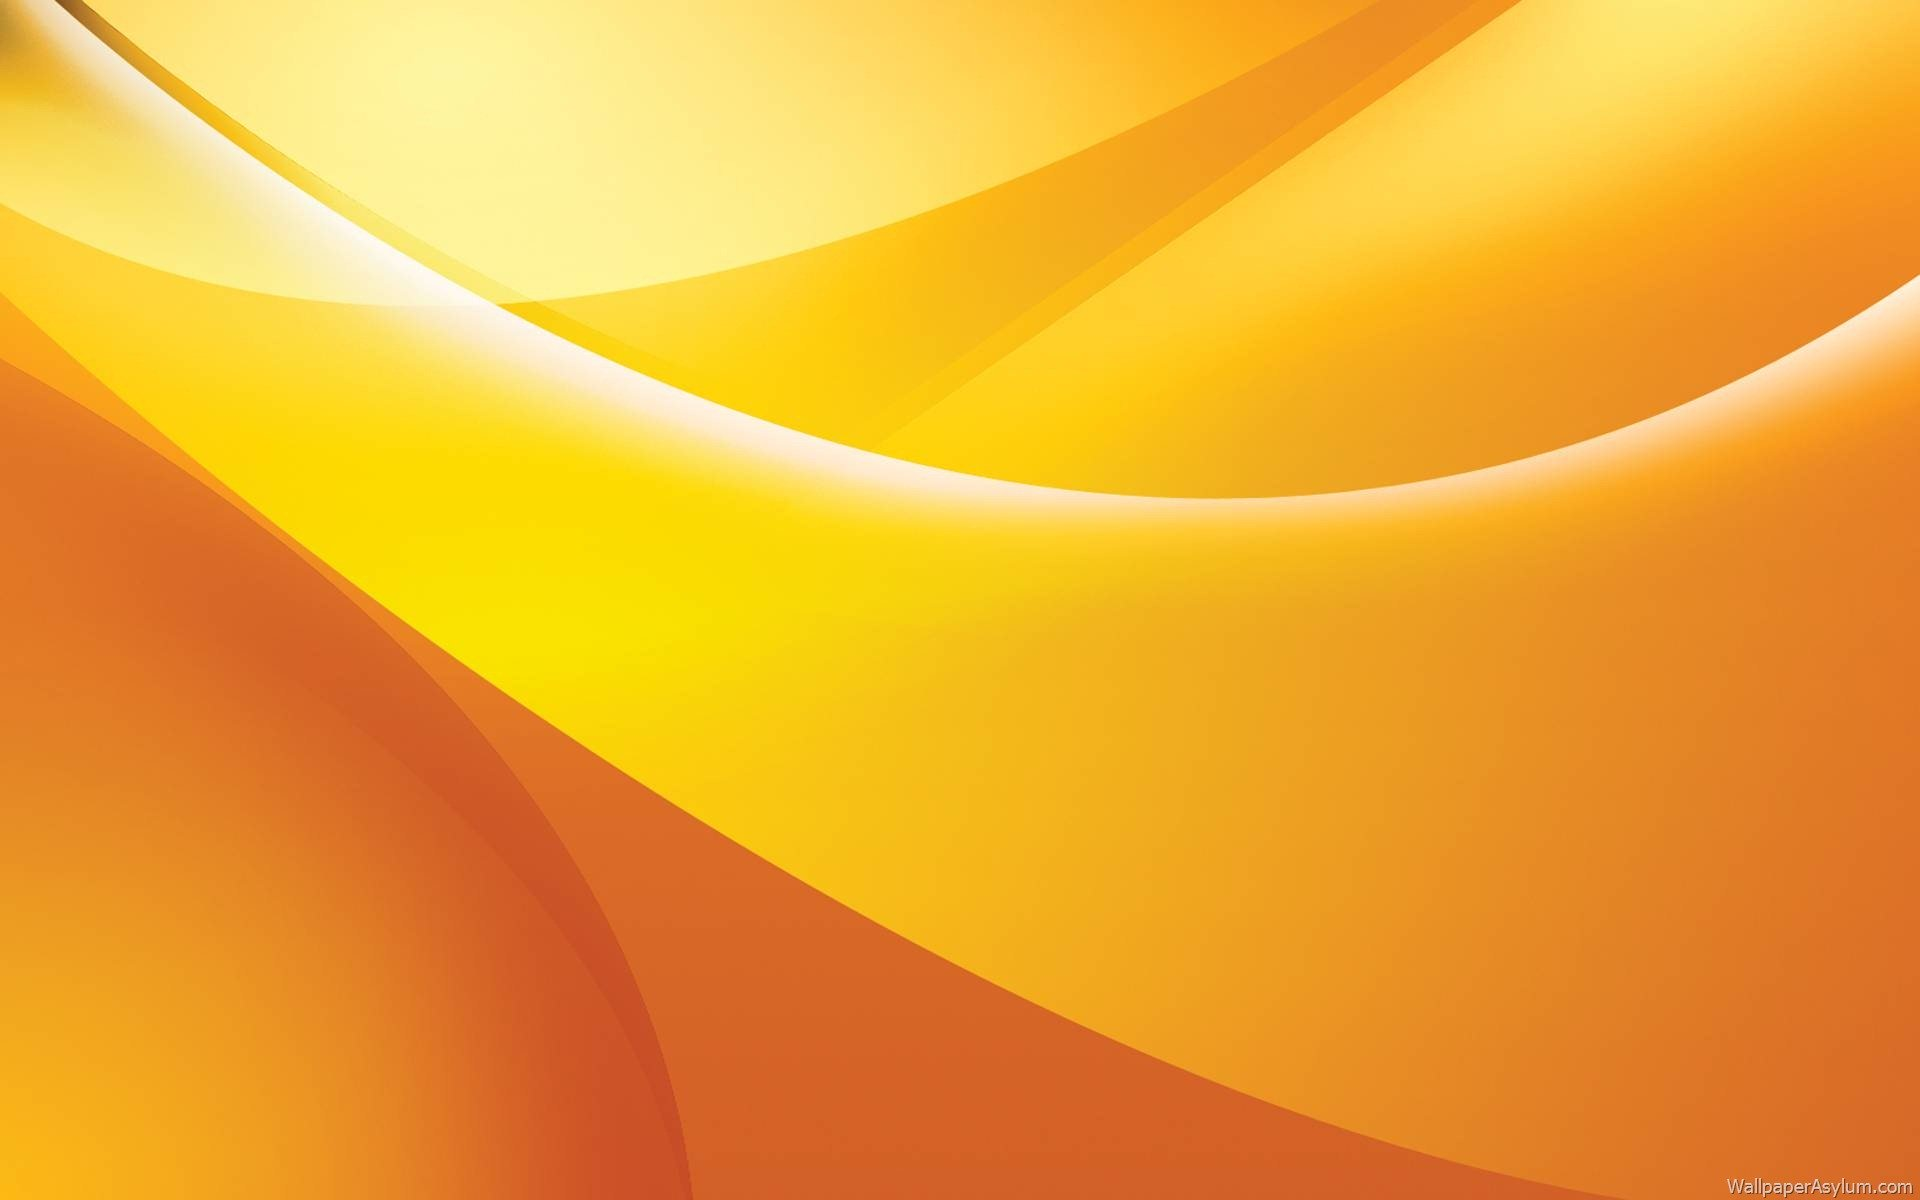 Free Download Yellow Wallpaper 17 1920x1200 For Your Desktop Mobile Tablet Explore 49 The Yellow Wallpaper Date Published The Yellow Wallpaper Film Gilman The Yellow Wallpaper The Yellow Wallpaper Publisher